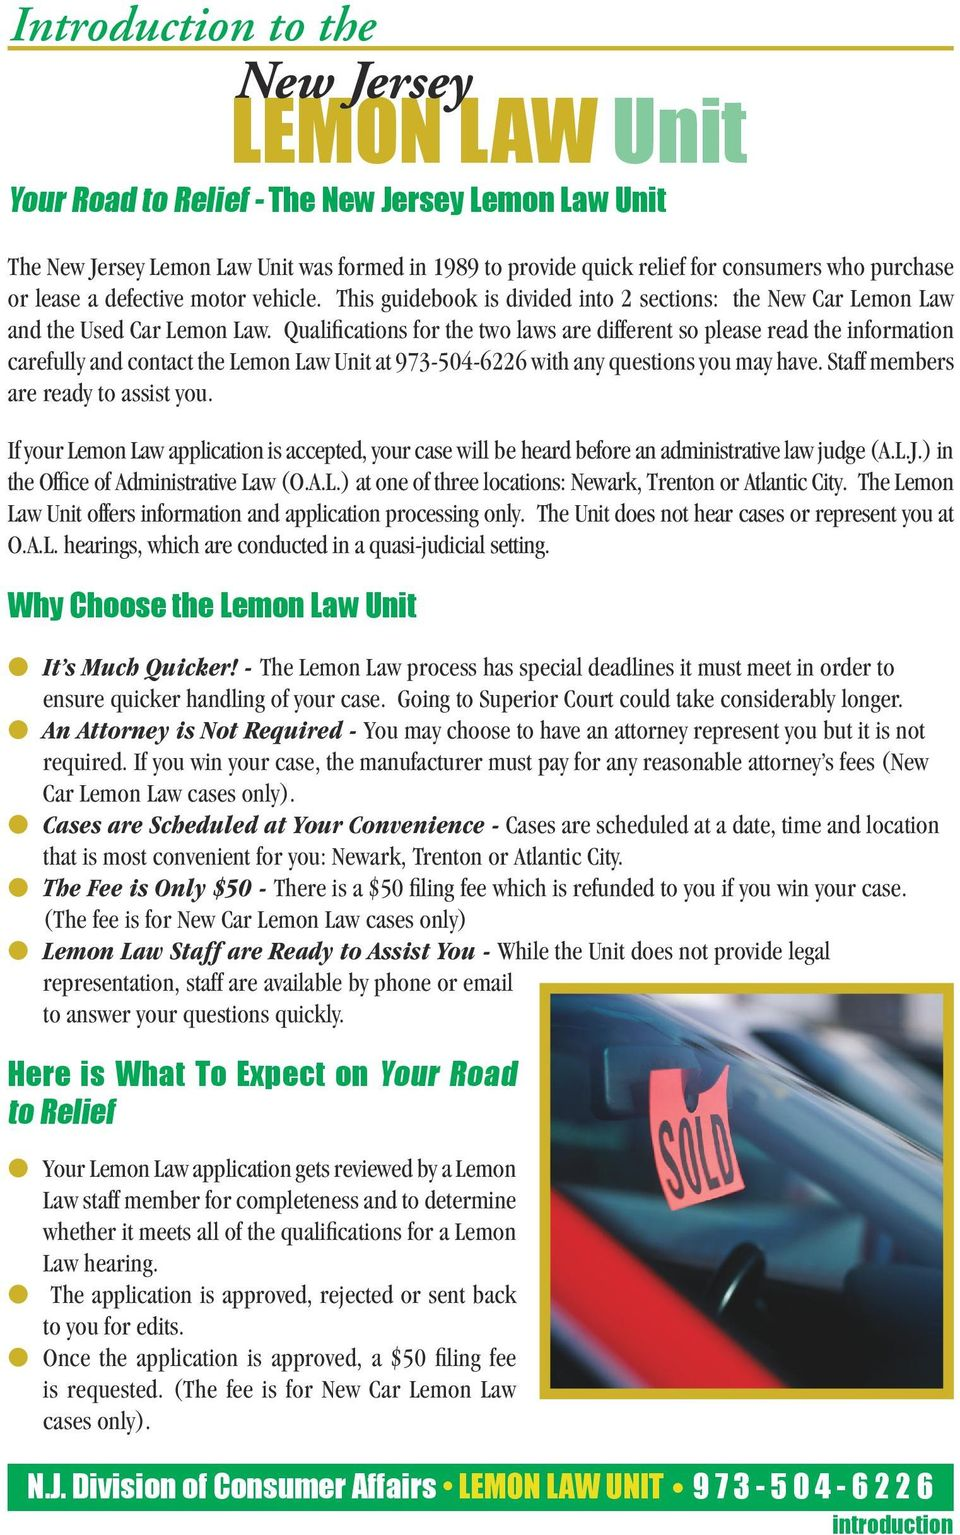 Qualifications for the two laws are different so please read the information carefully and contact the Lemon Law Unit at 973-504-6226 with any questions you may have.